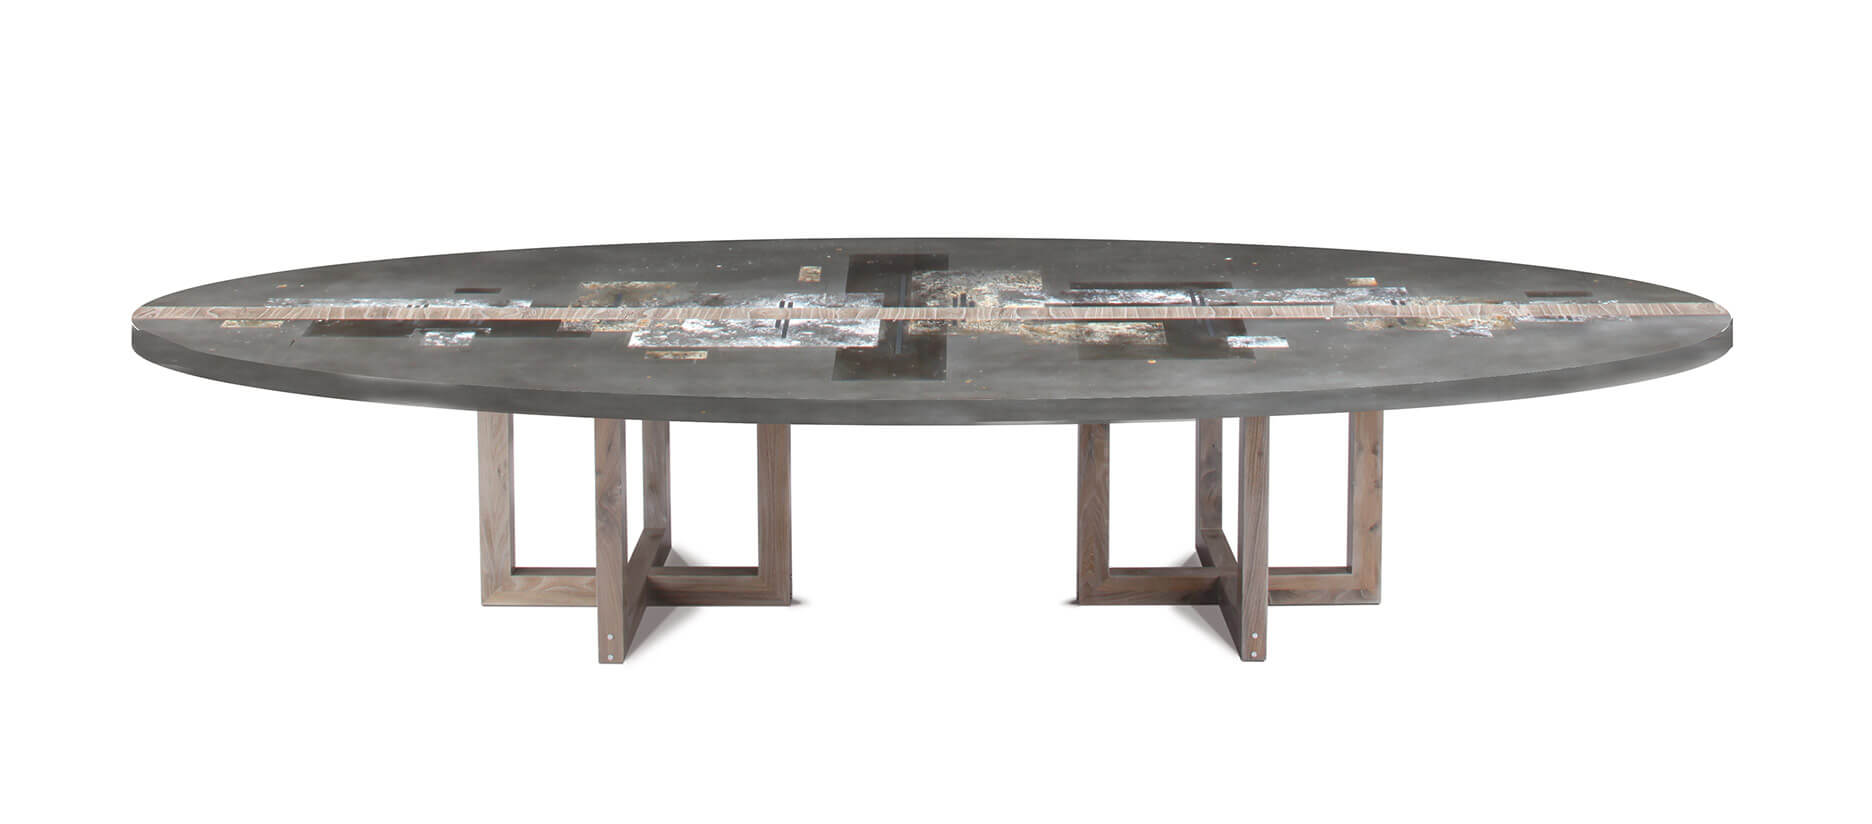 dining-table1_Divided-Lands_5